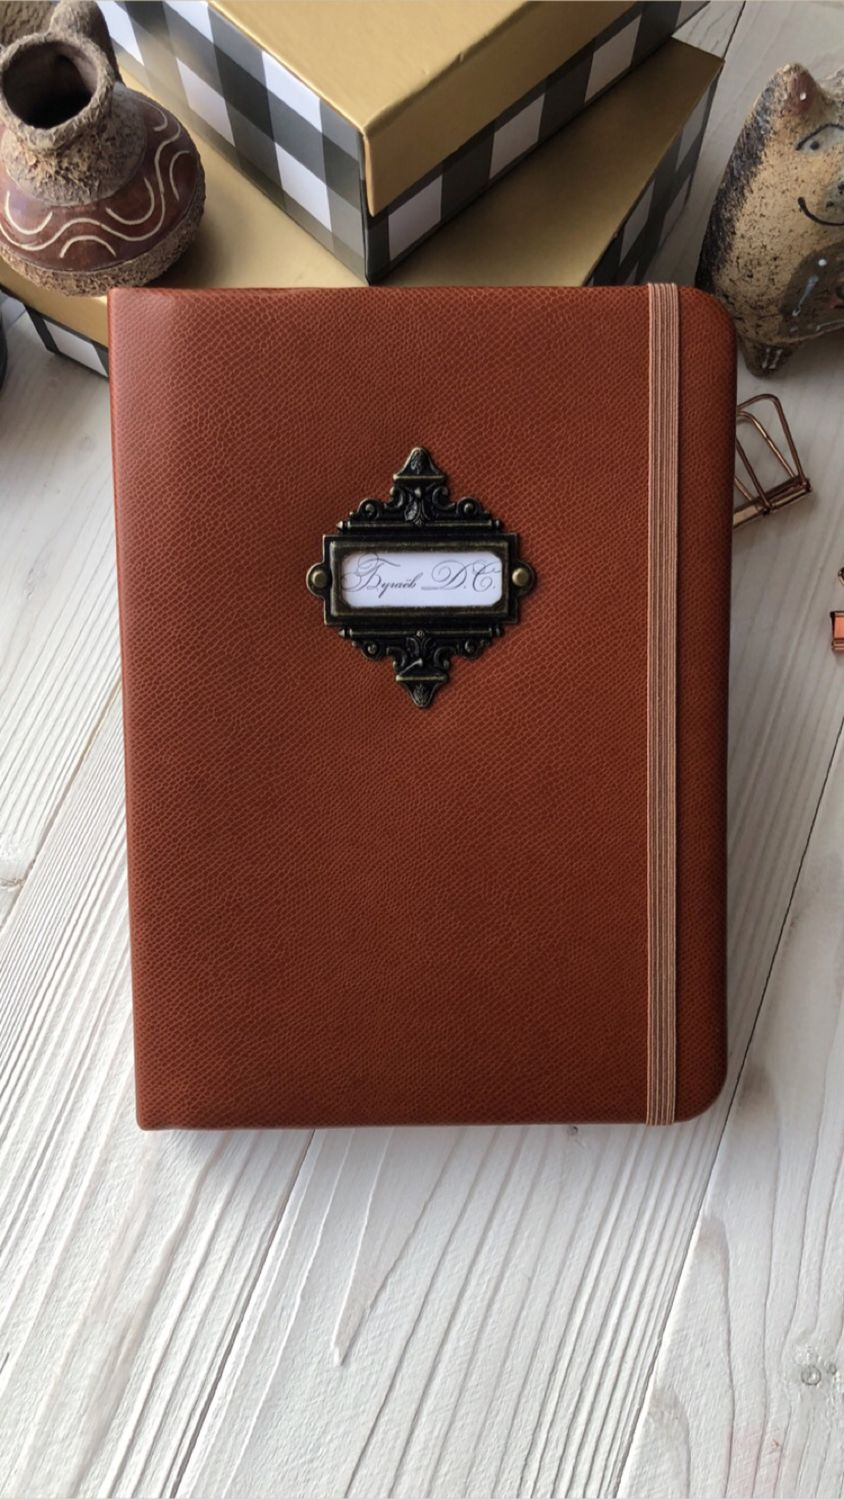 Personalized Notepad, Notebooks, Moscow,  Фото №1